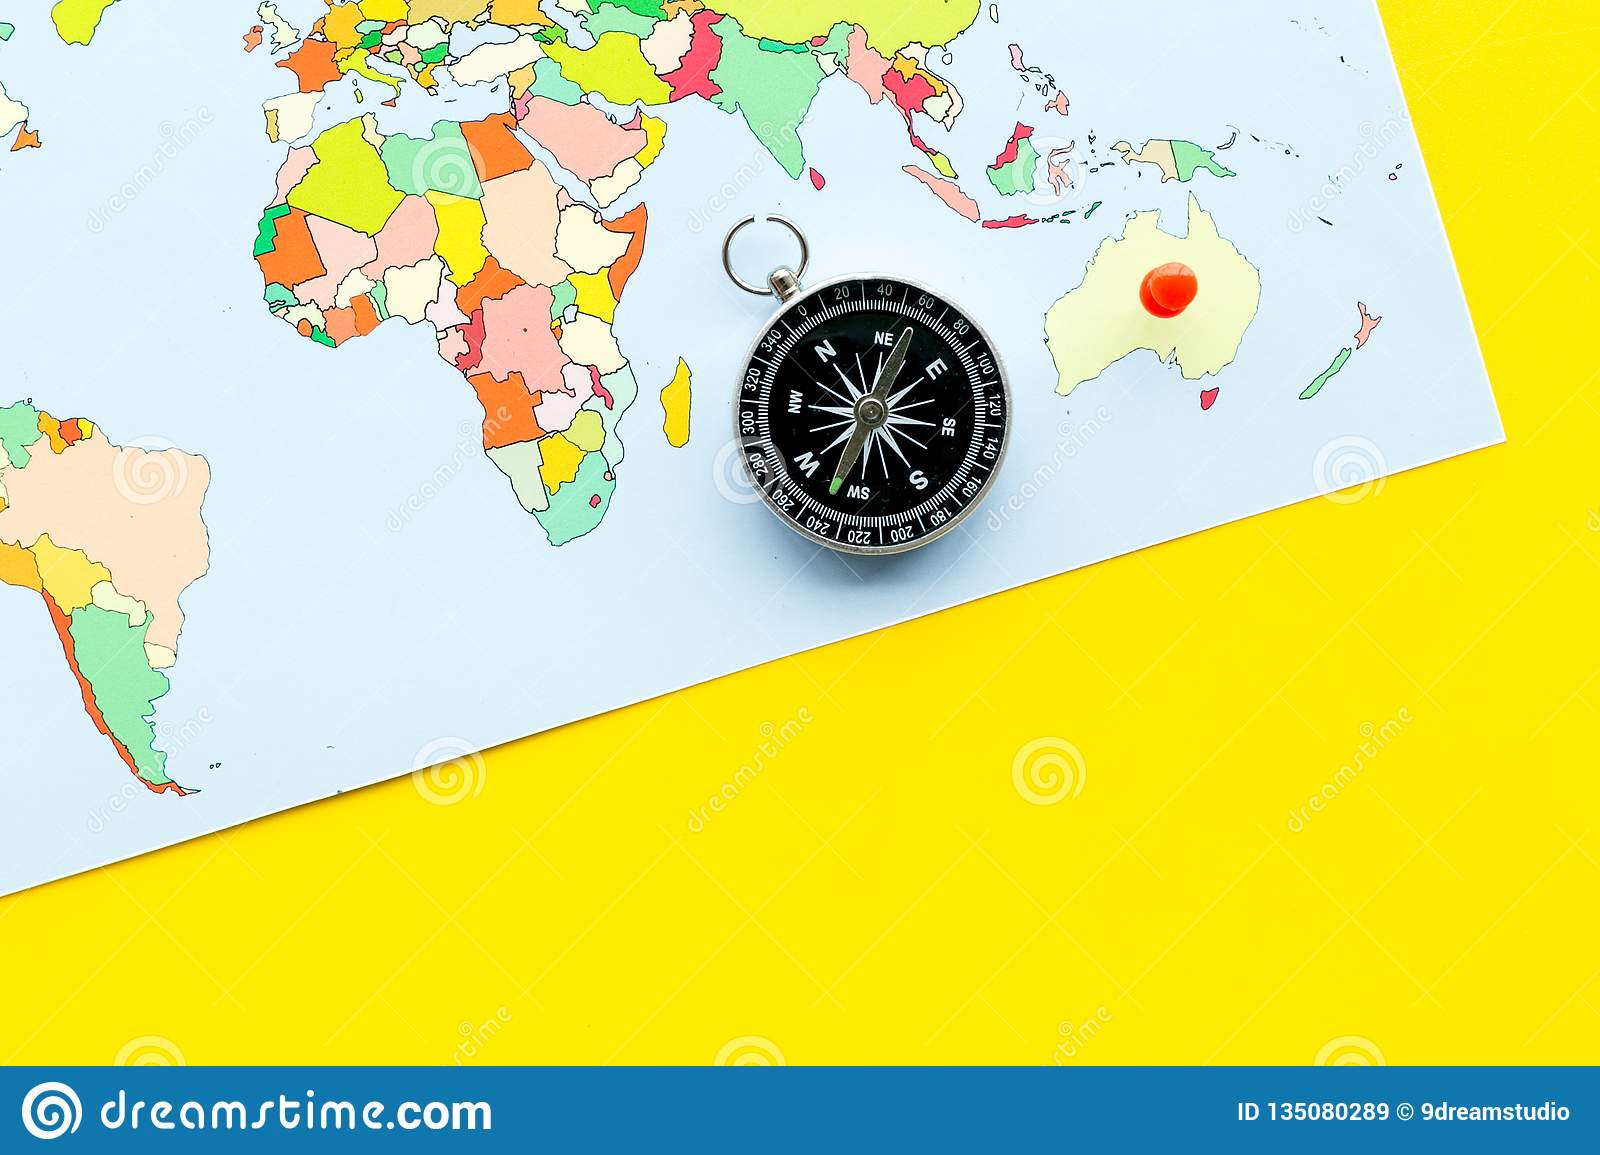 Map Of The World With Compass.Travel Direction And Trip Planning Concept With Compass And Map Of